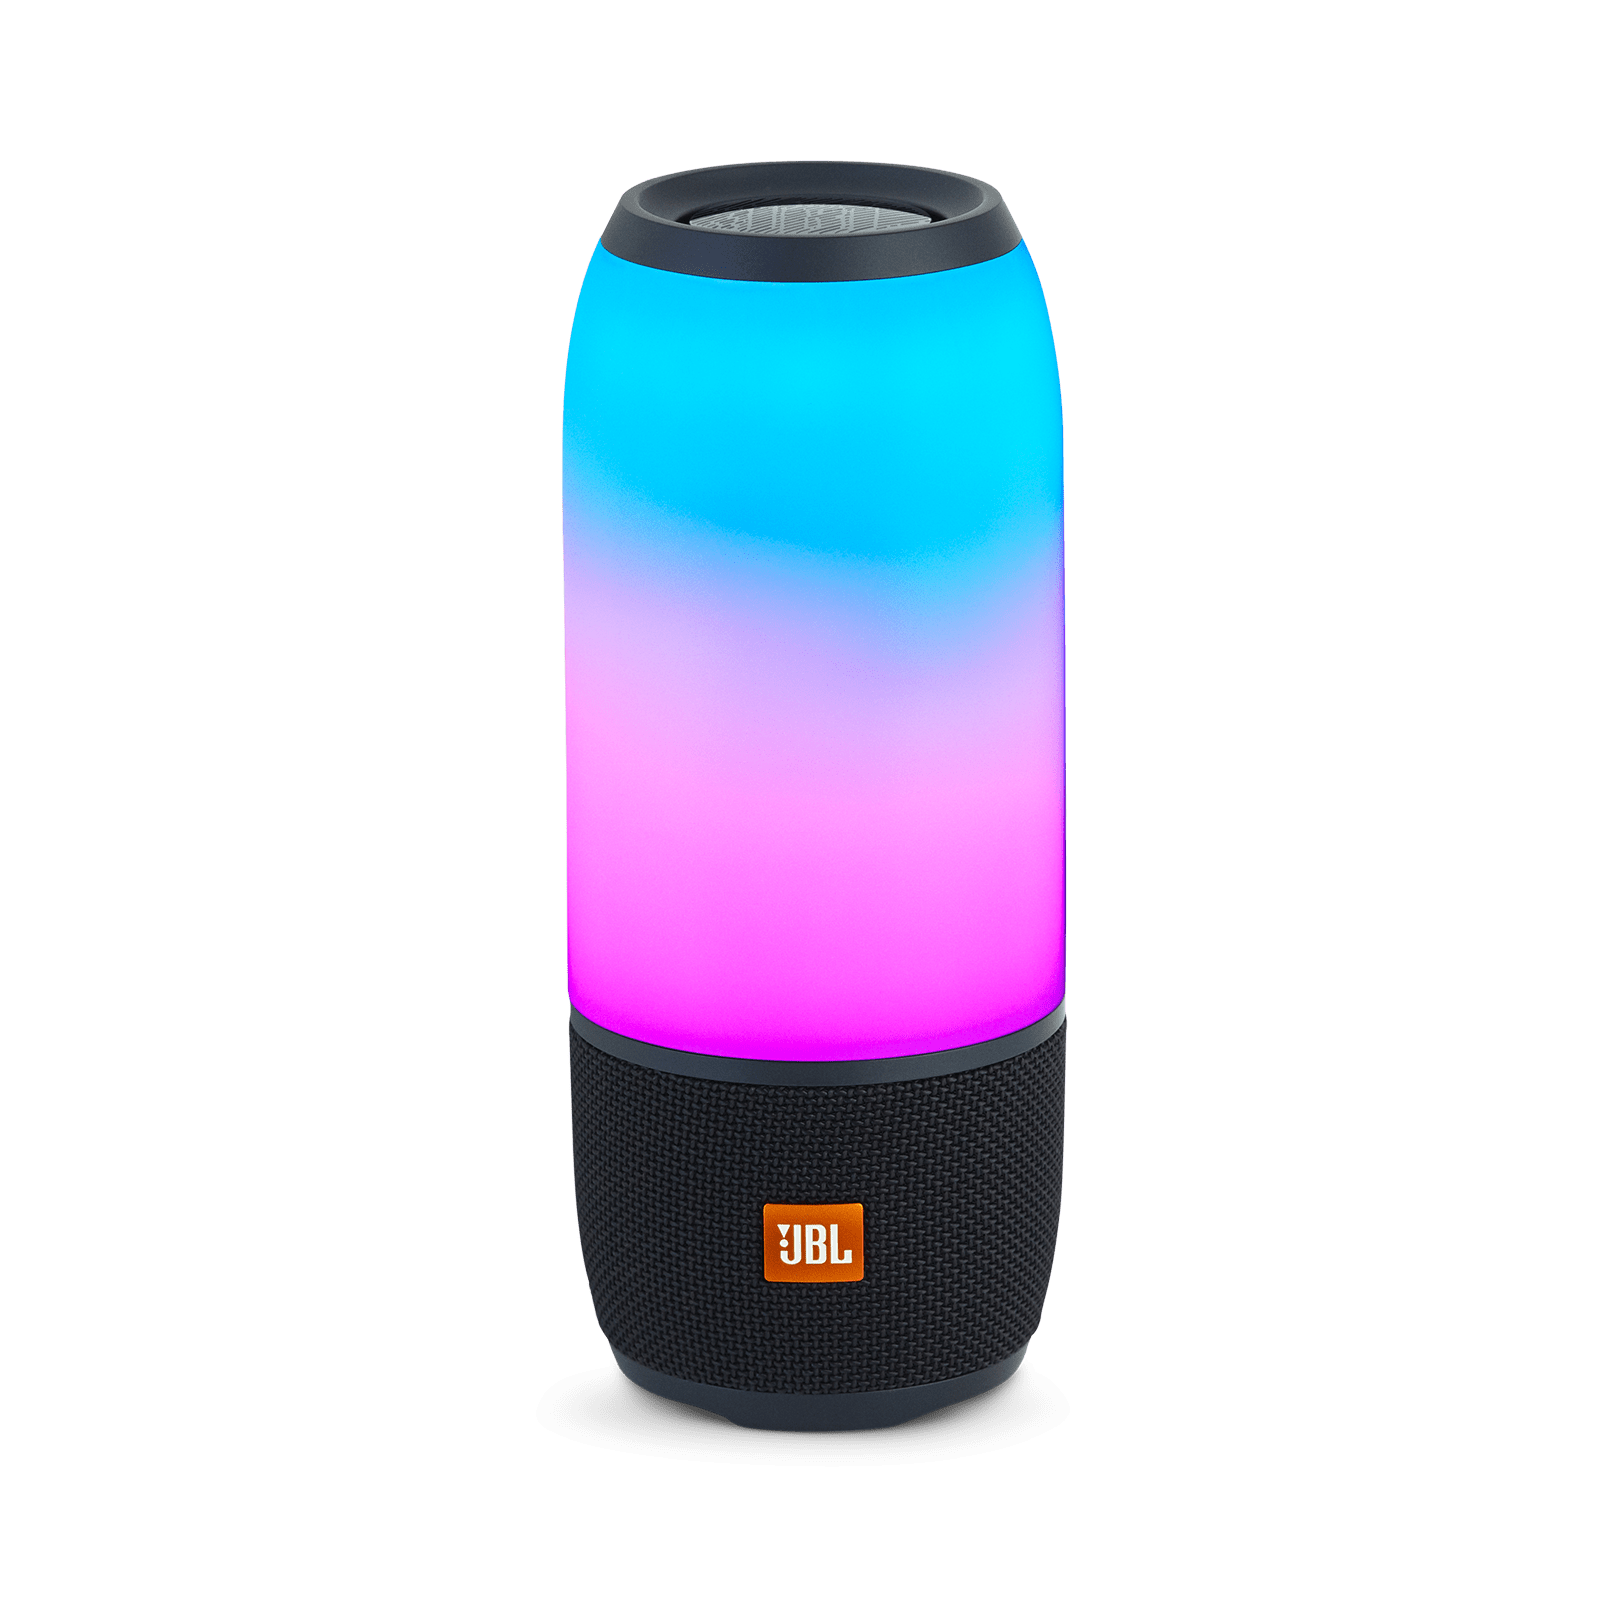 Jbl Audio Jbl Pulse 3 | Waterproof Bluetooth Speaker With 360° Lightshow